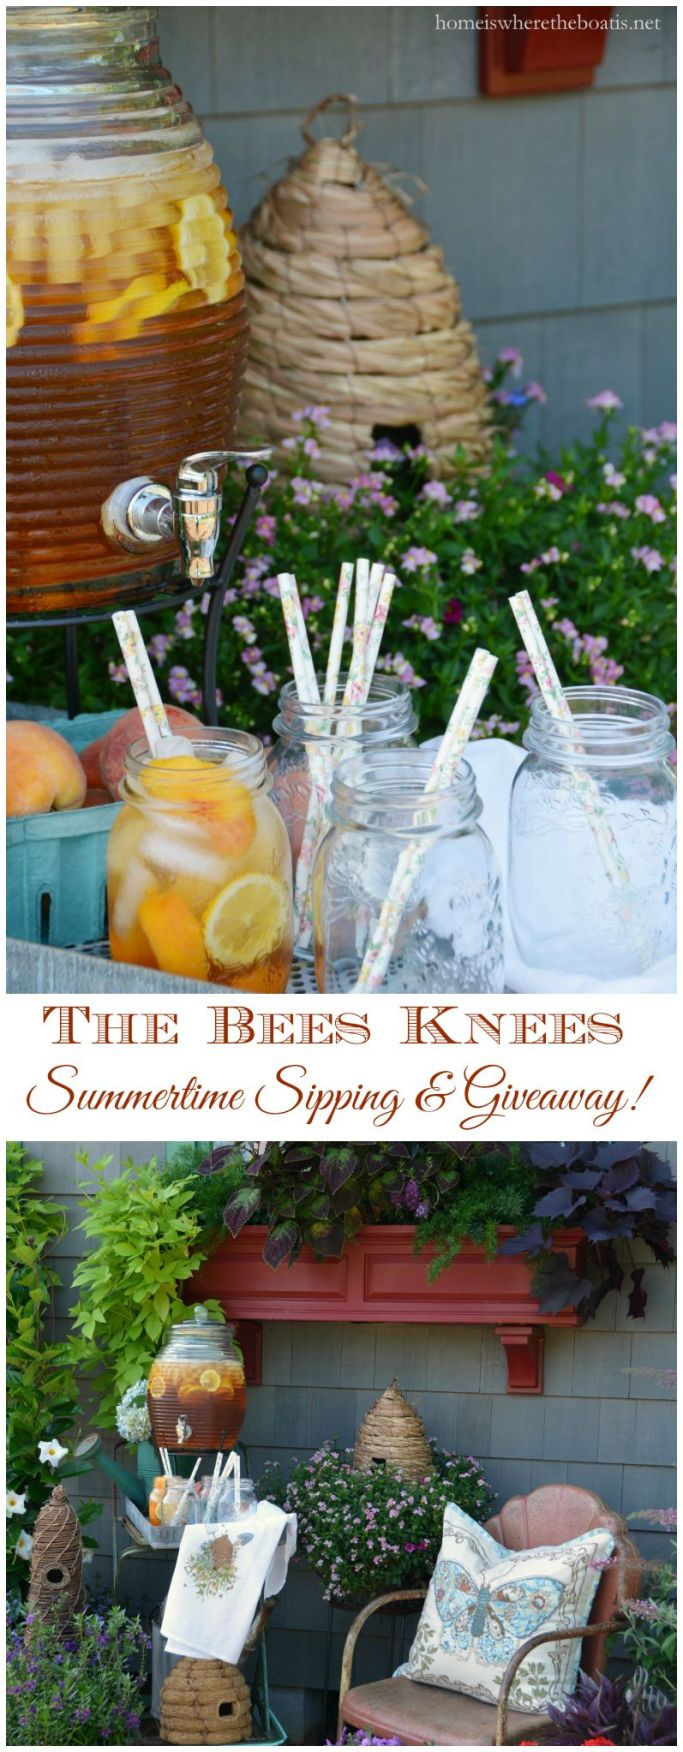 The Bees Knees Summertime Sipping and Giveaway!